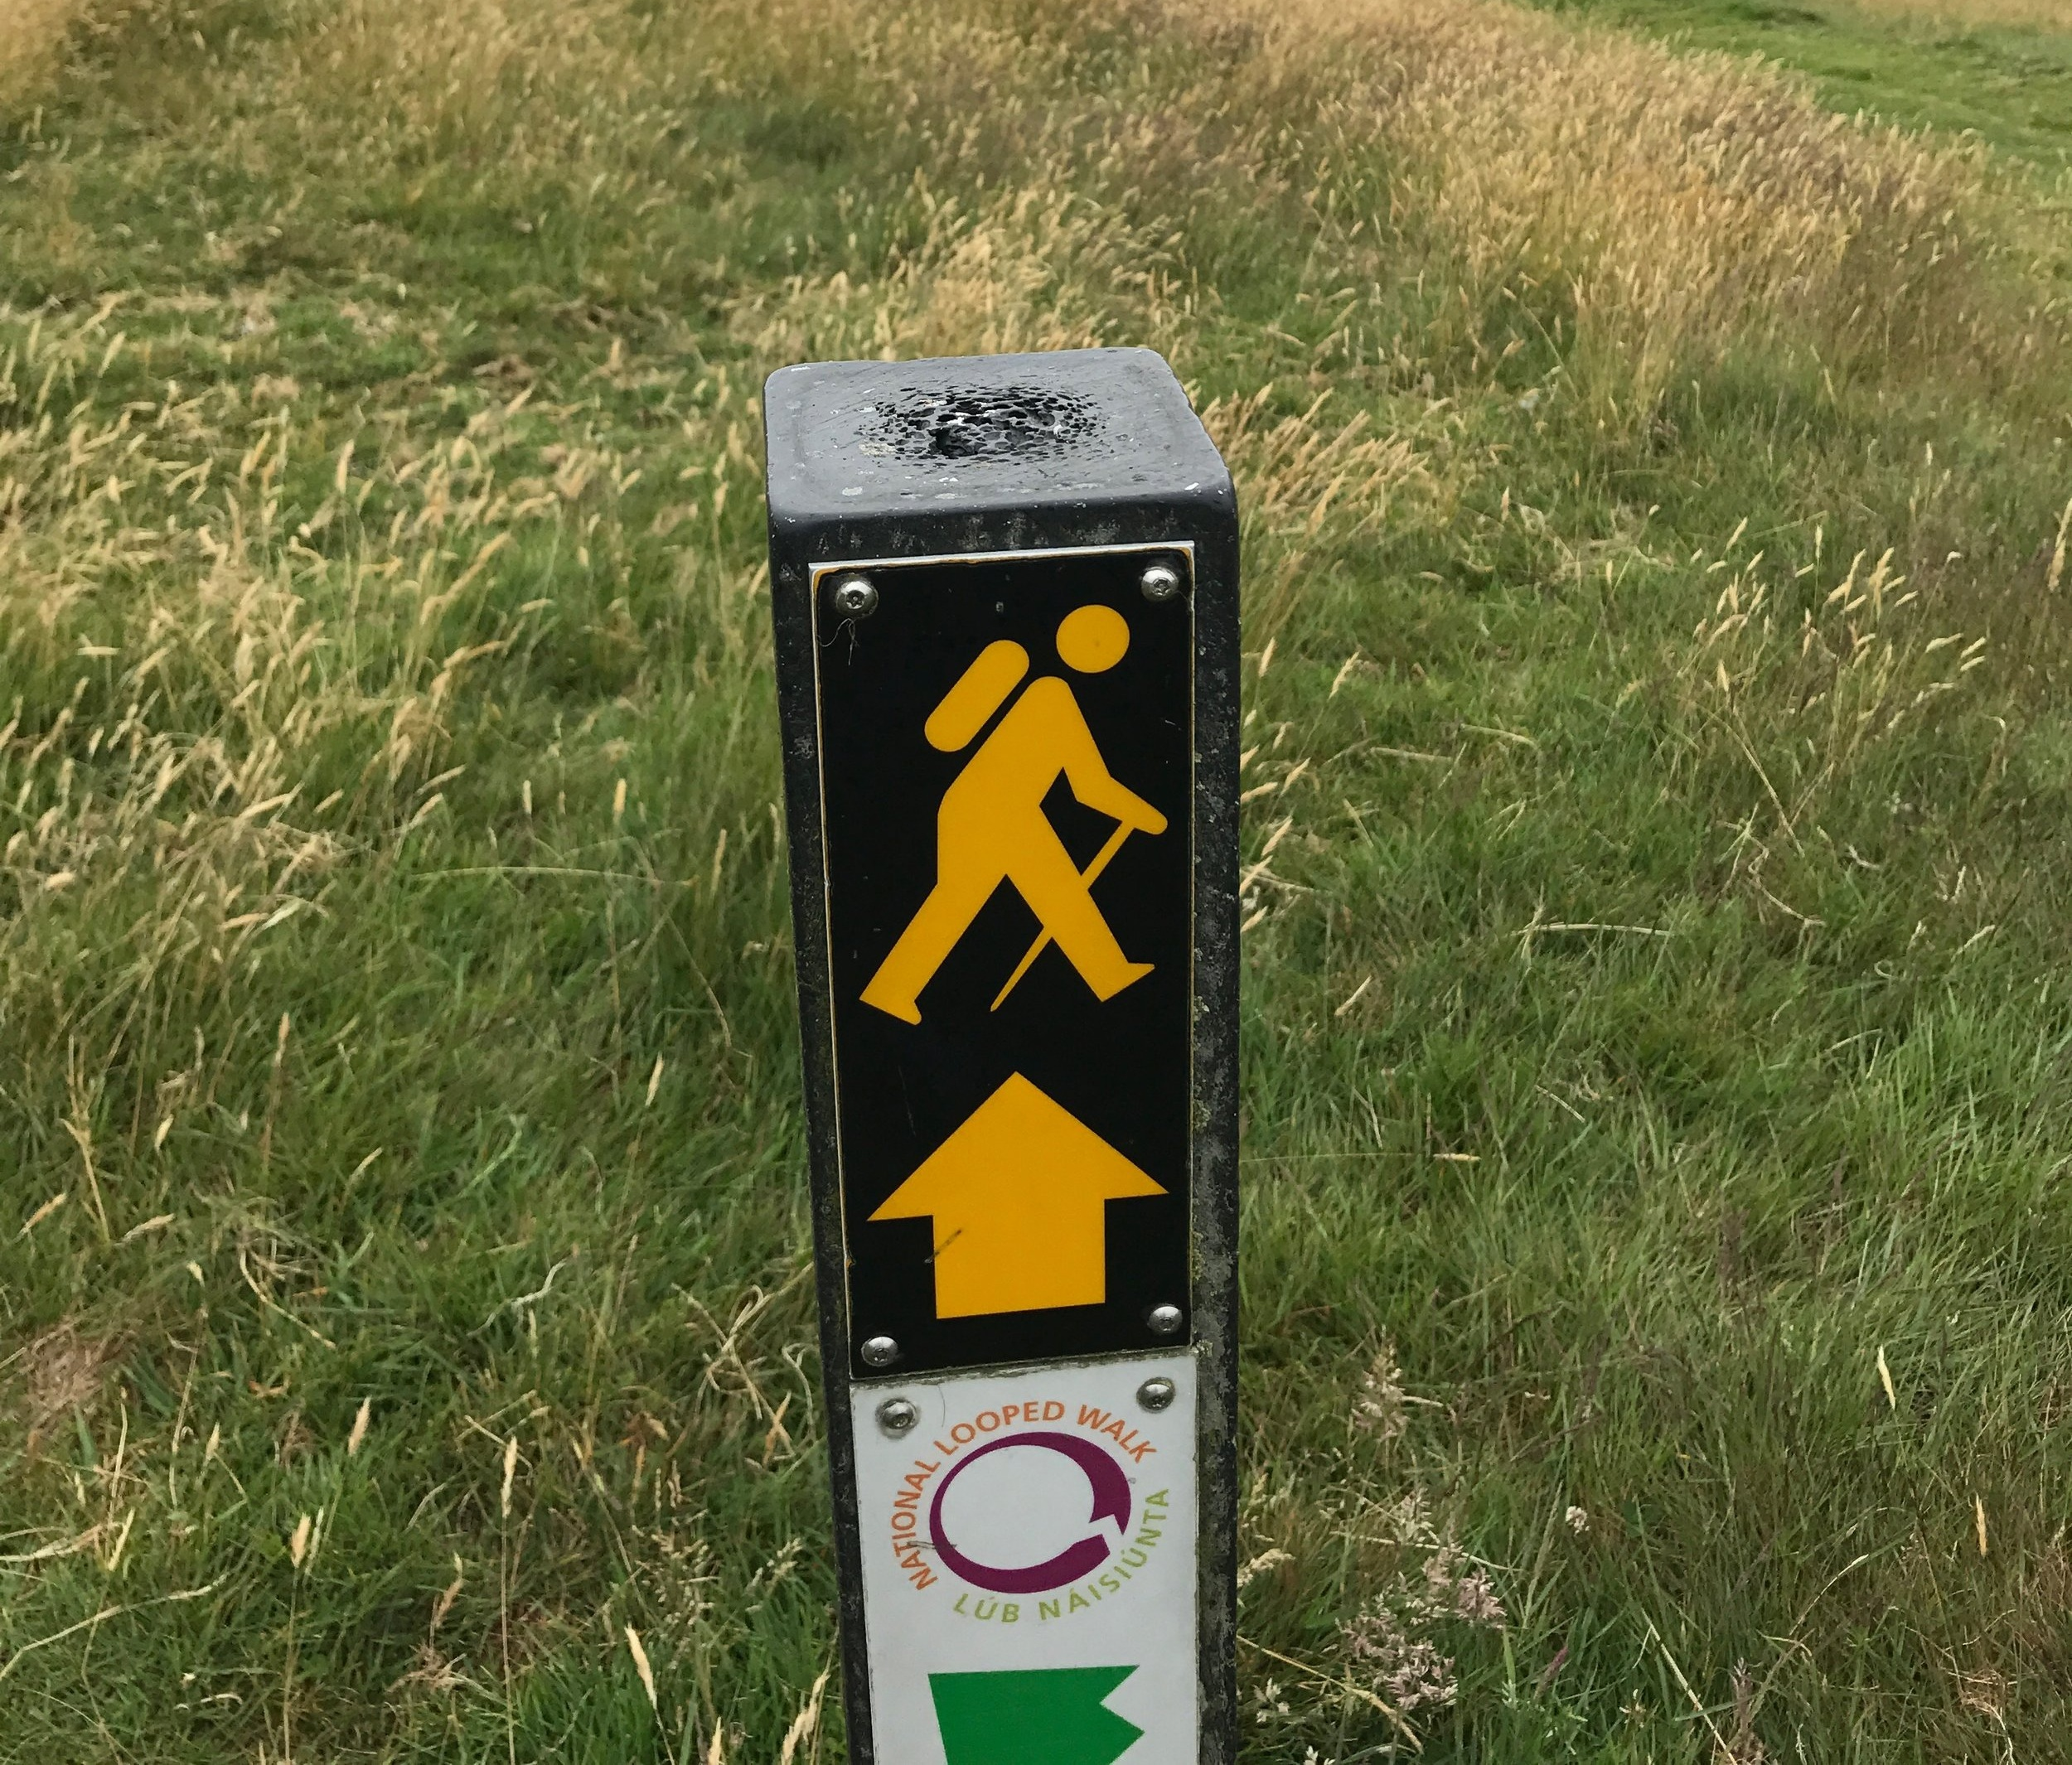 The yellow man waymark will become a welcomed companion on the Wicklow Way.